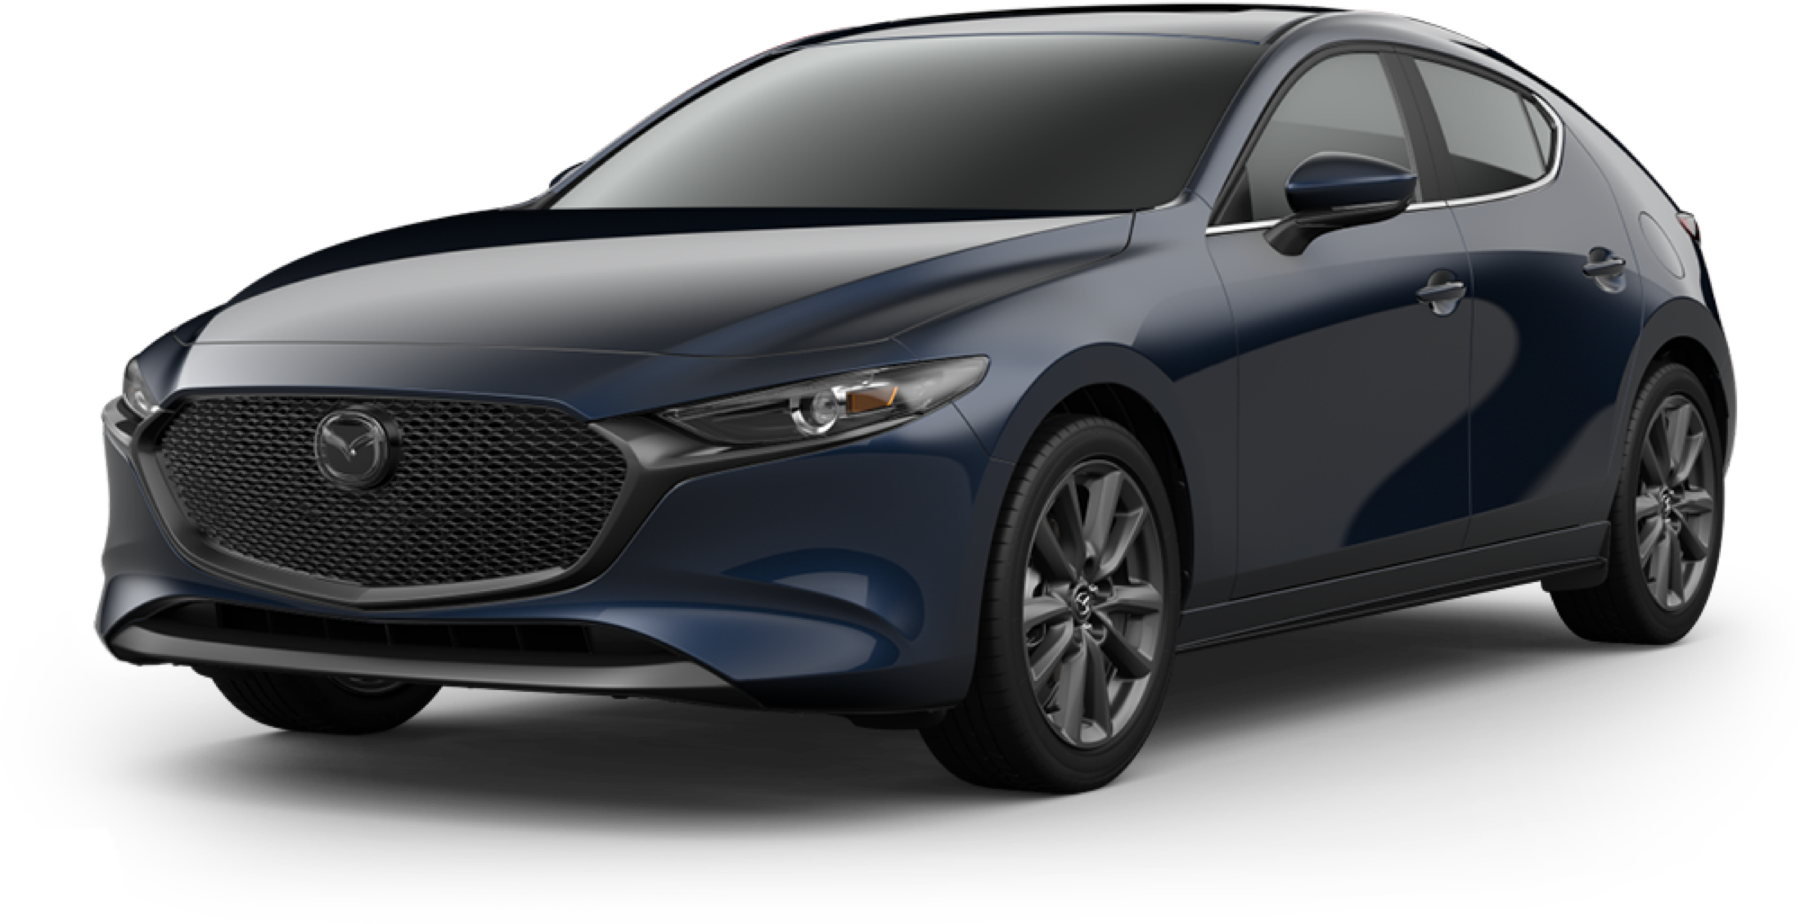 2021 Mazda3 Hatchback, Deep Crystal Blue Mica